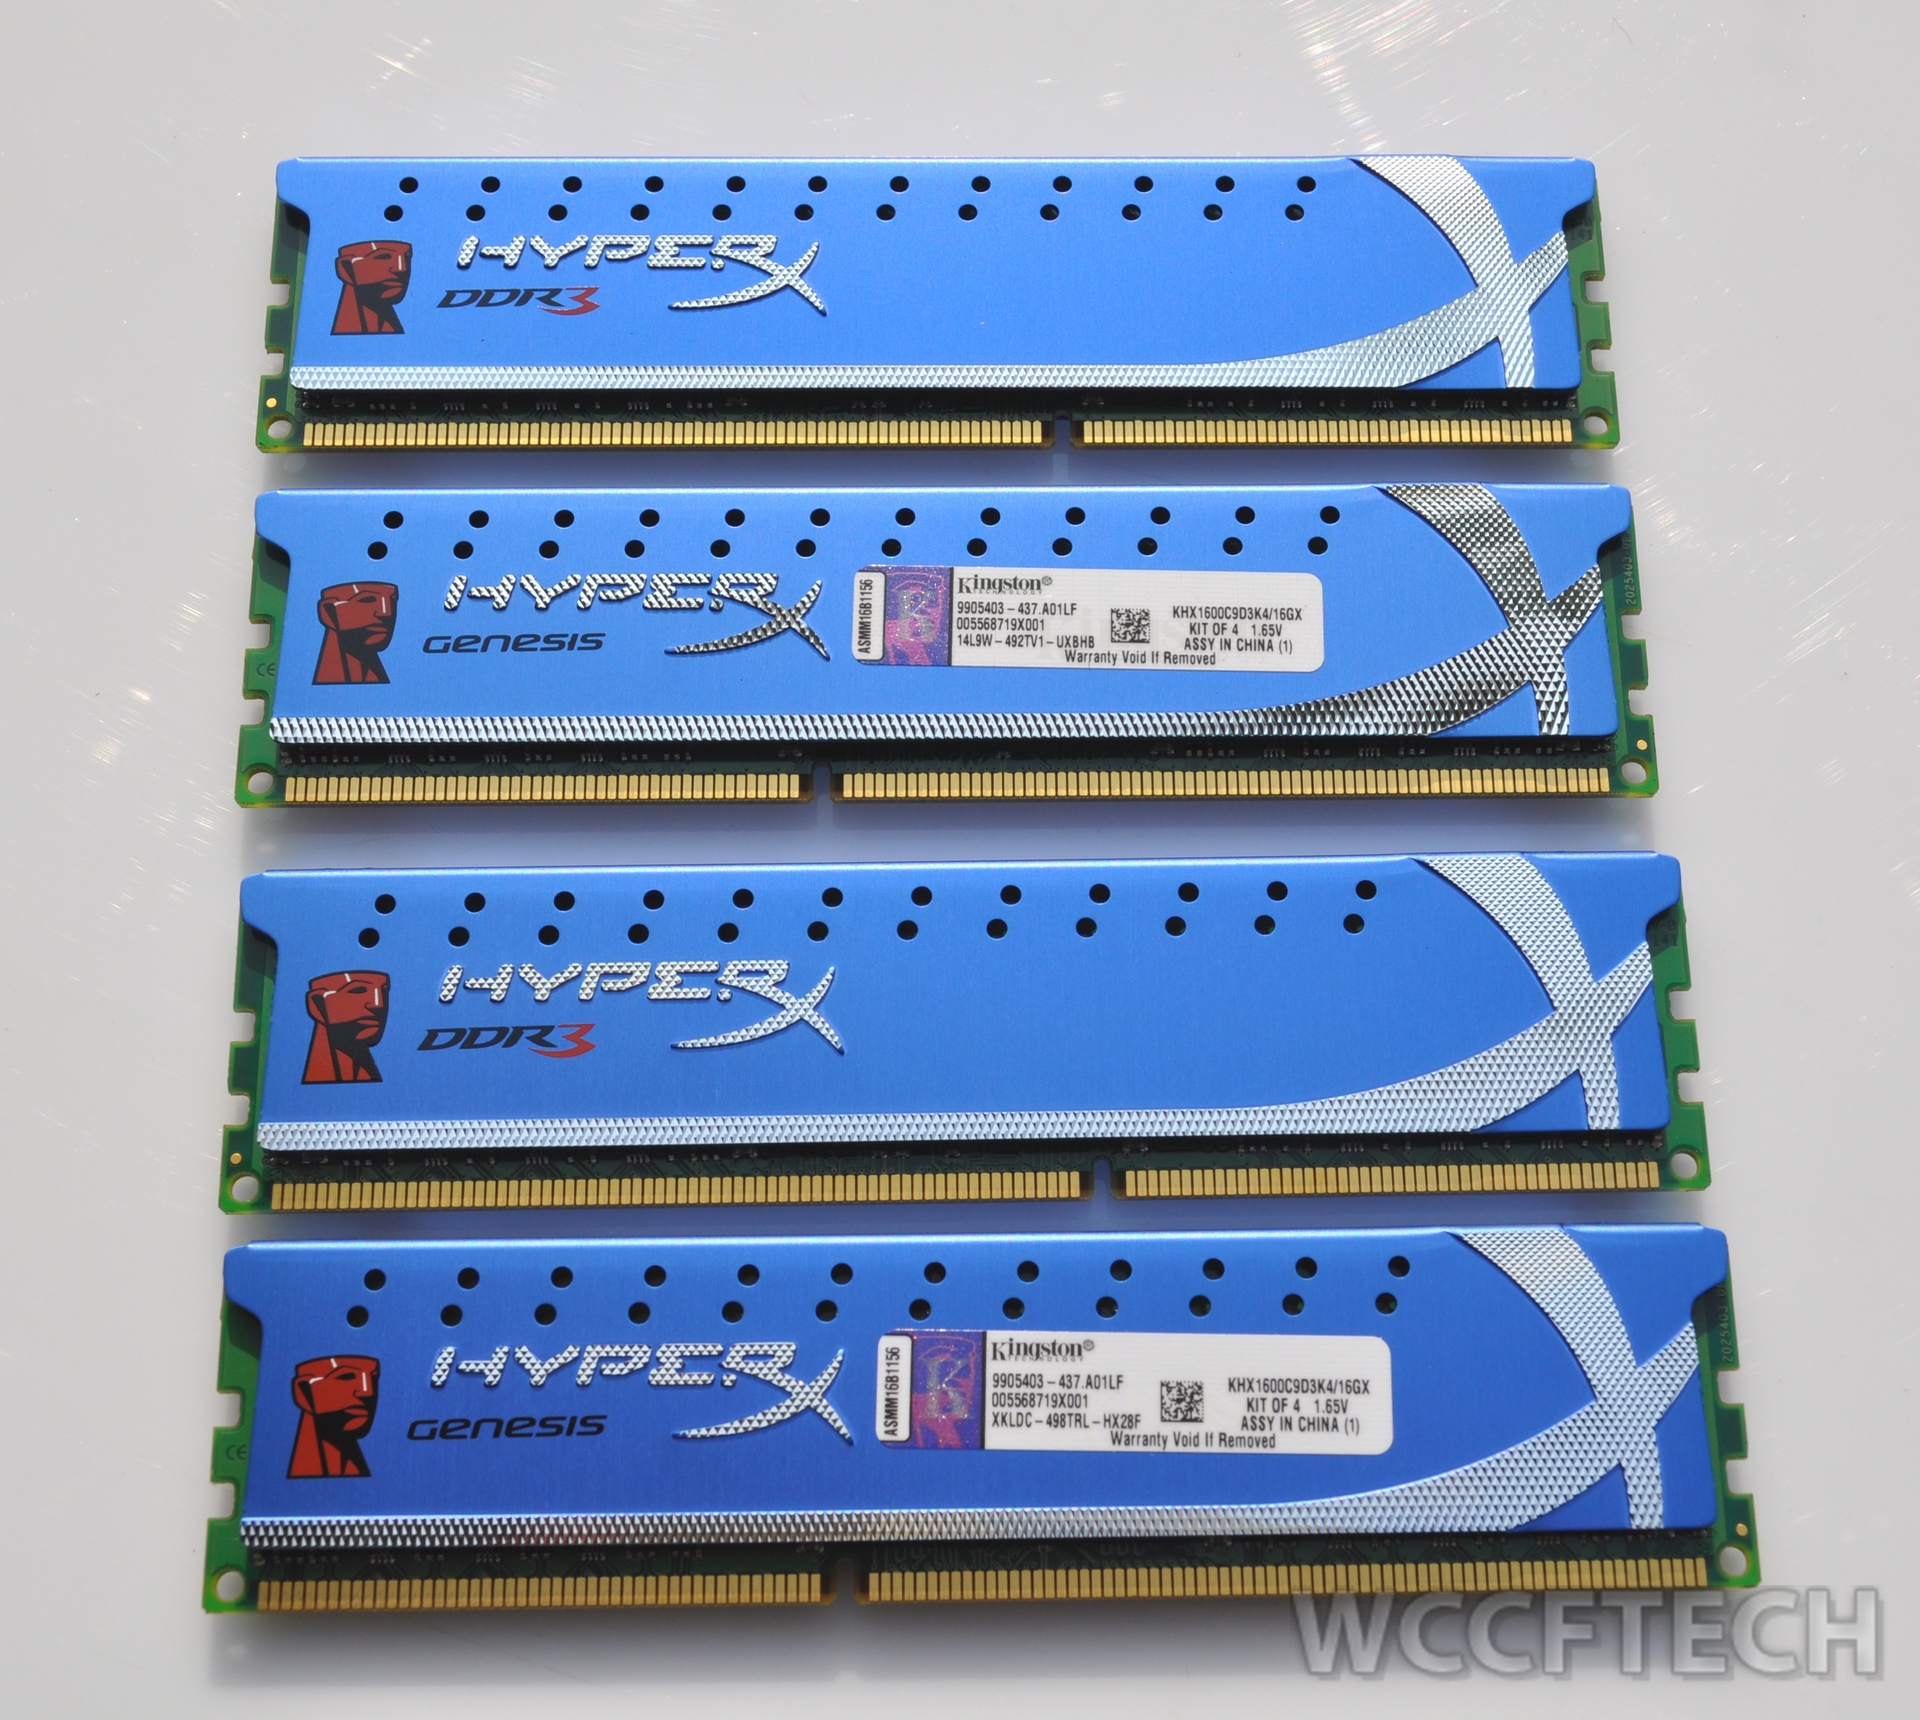 Kingston Hyperx Genesis 16gb Ddr3 1600 Review